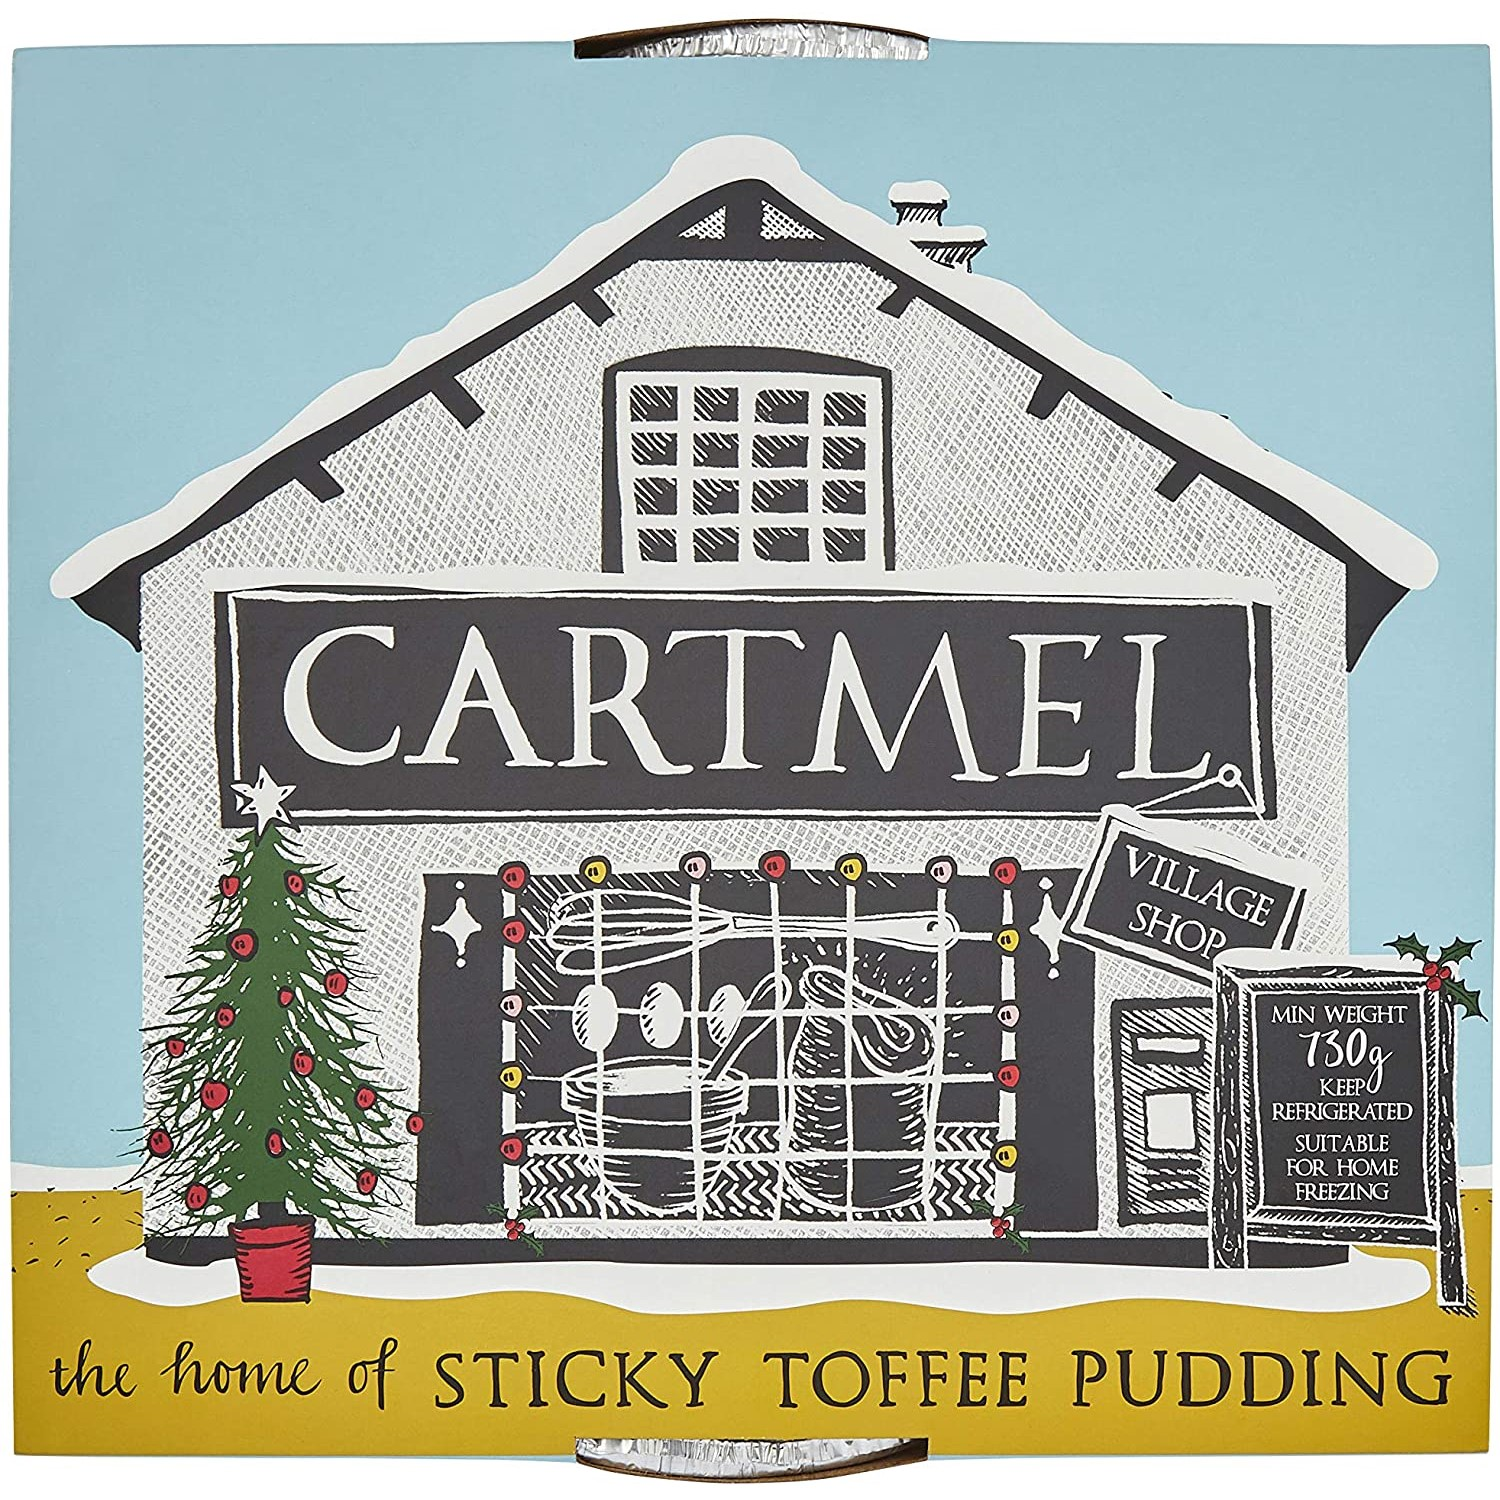 Cartmel Sticky Toffee Pudding 730g